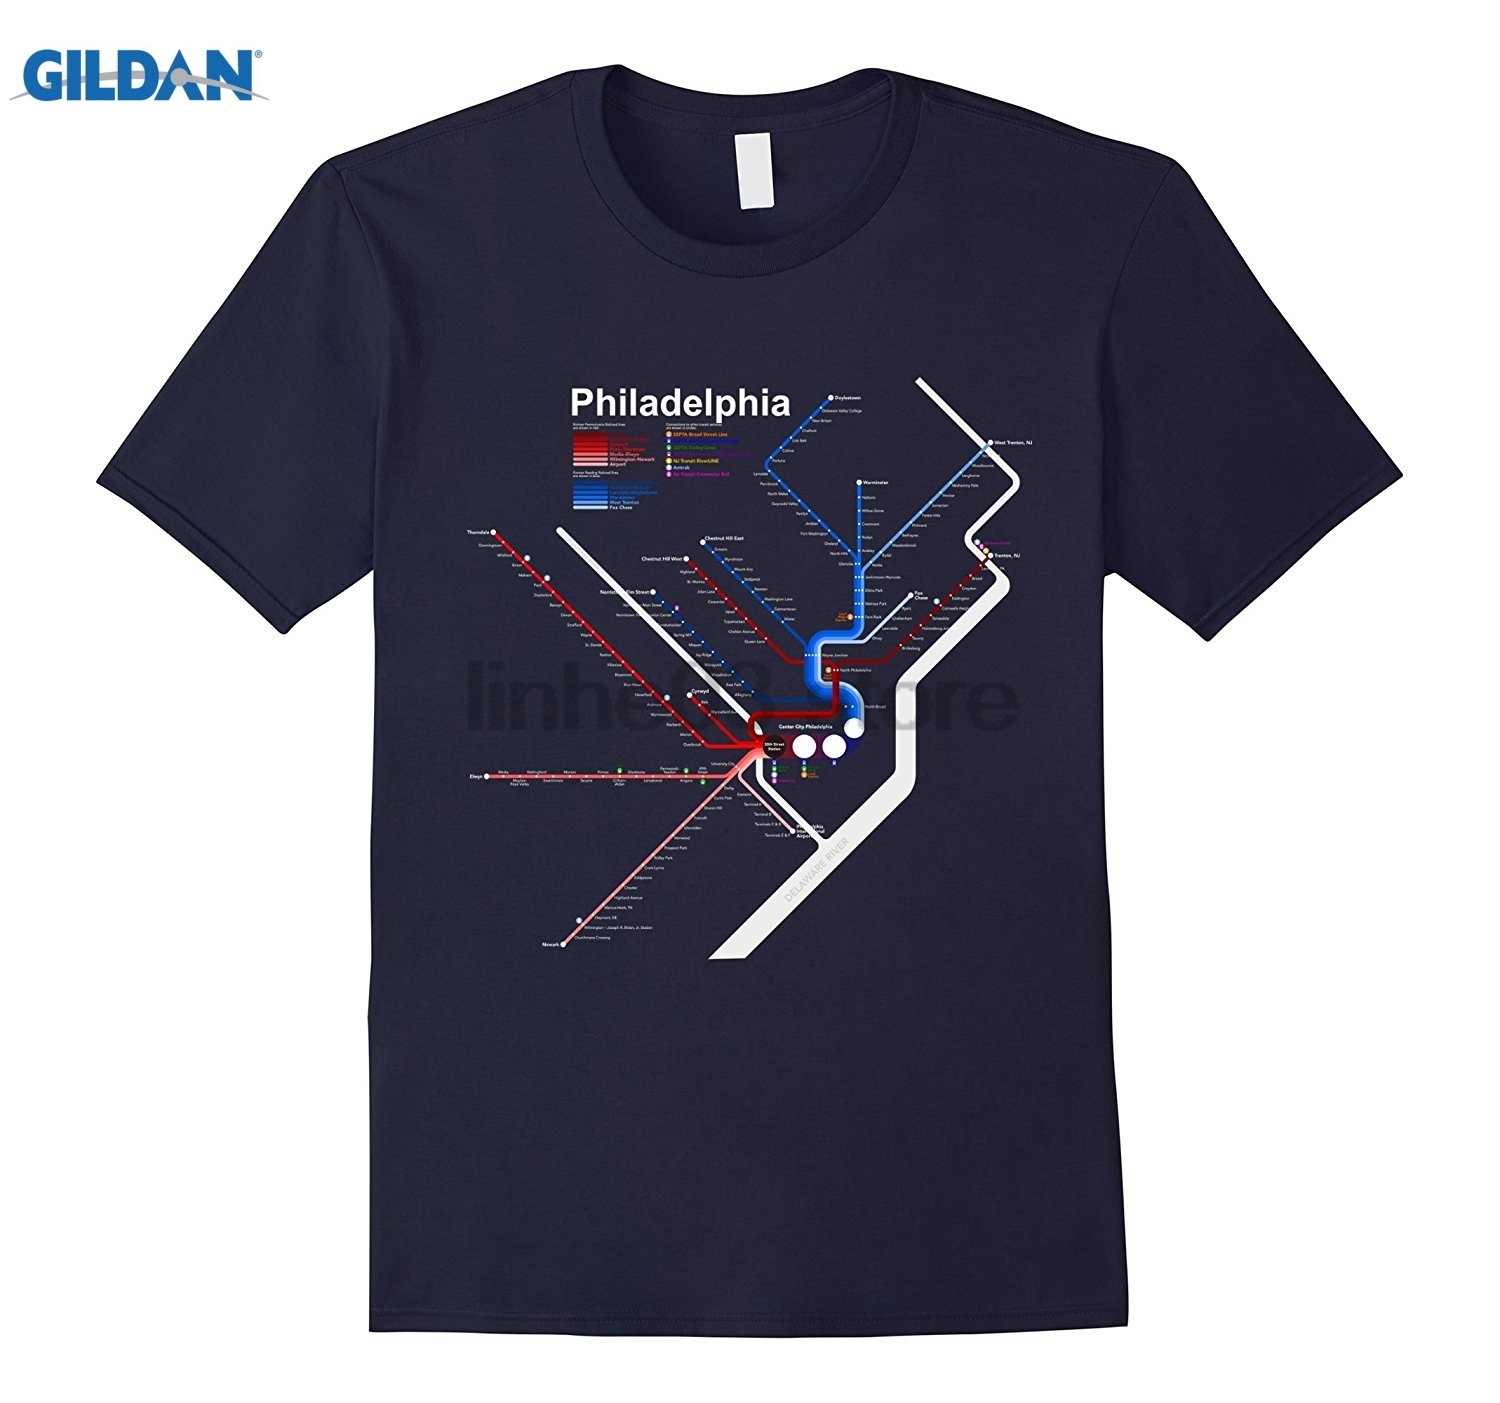 GILDAN Philadelphia T-Shirt City Map Train Rail Station PA Gift Tee Hot Womens T-shirt